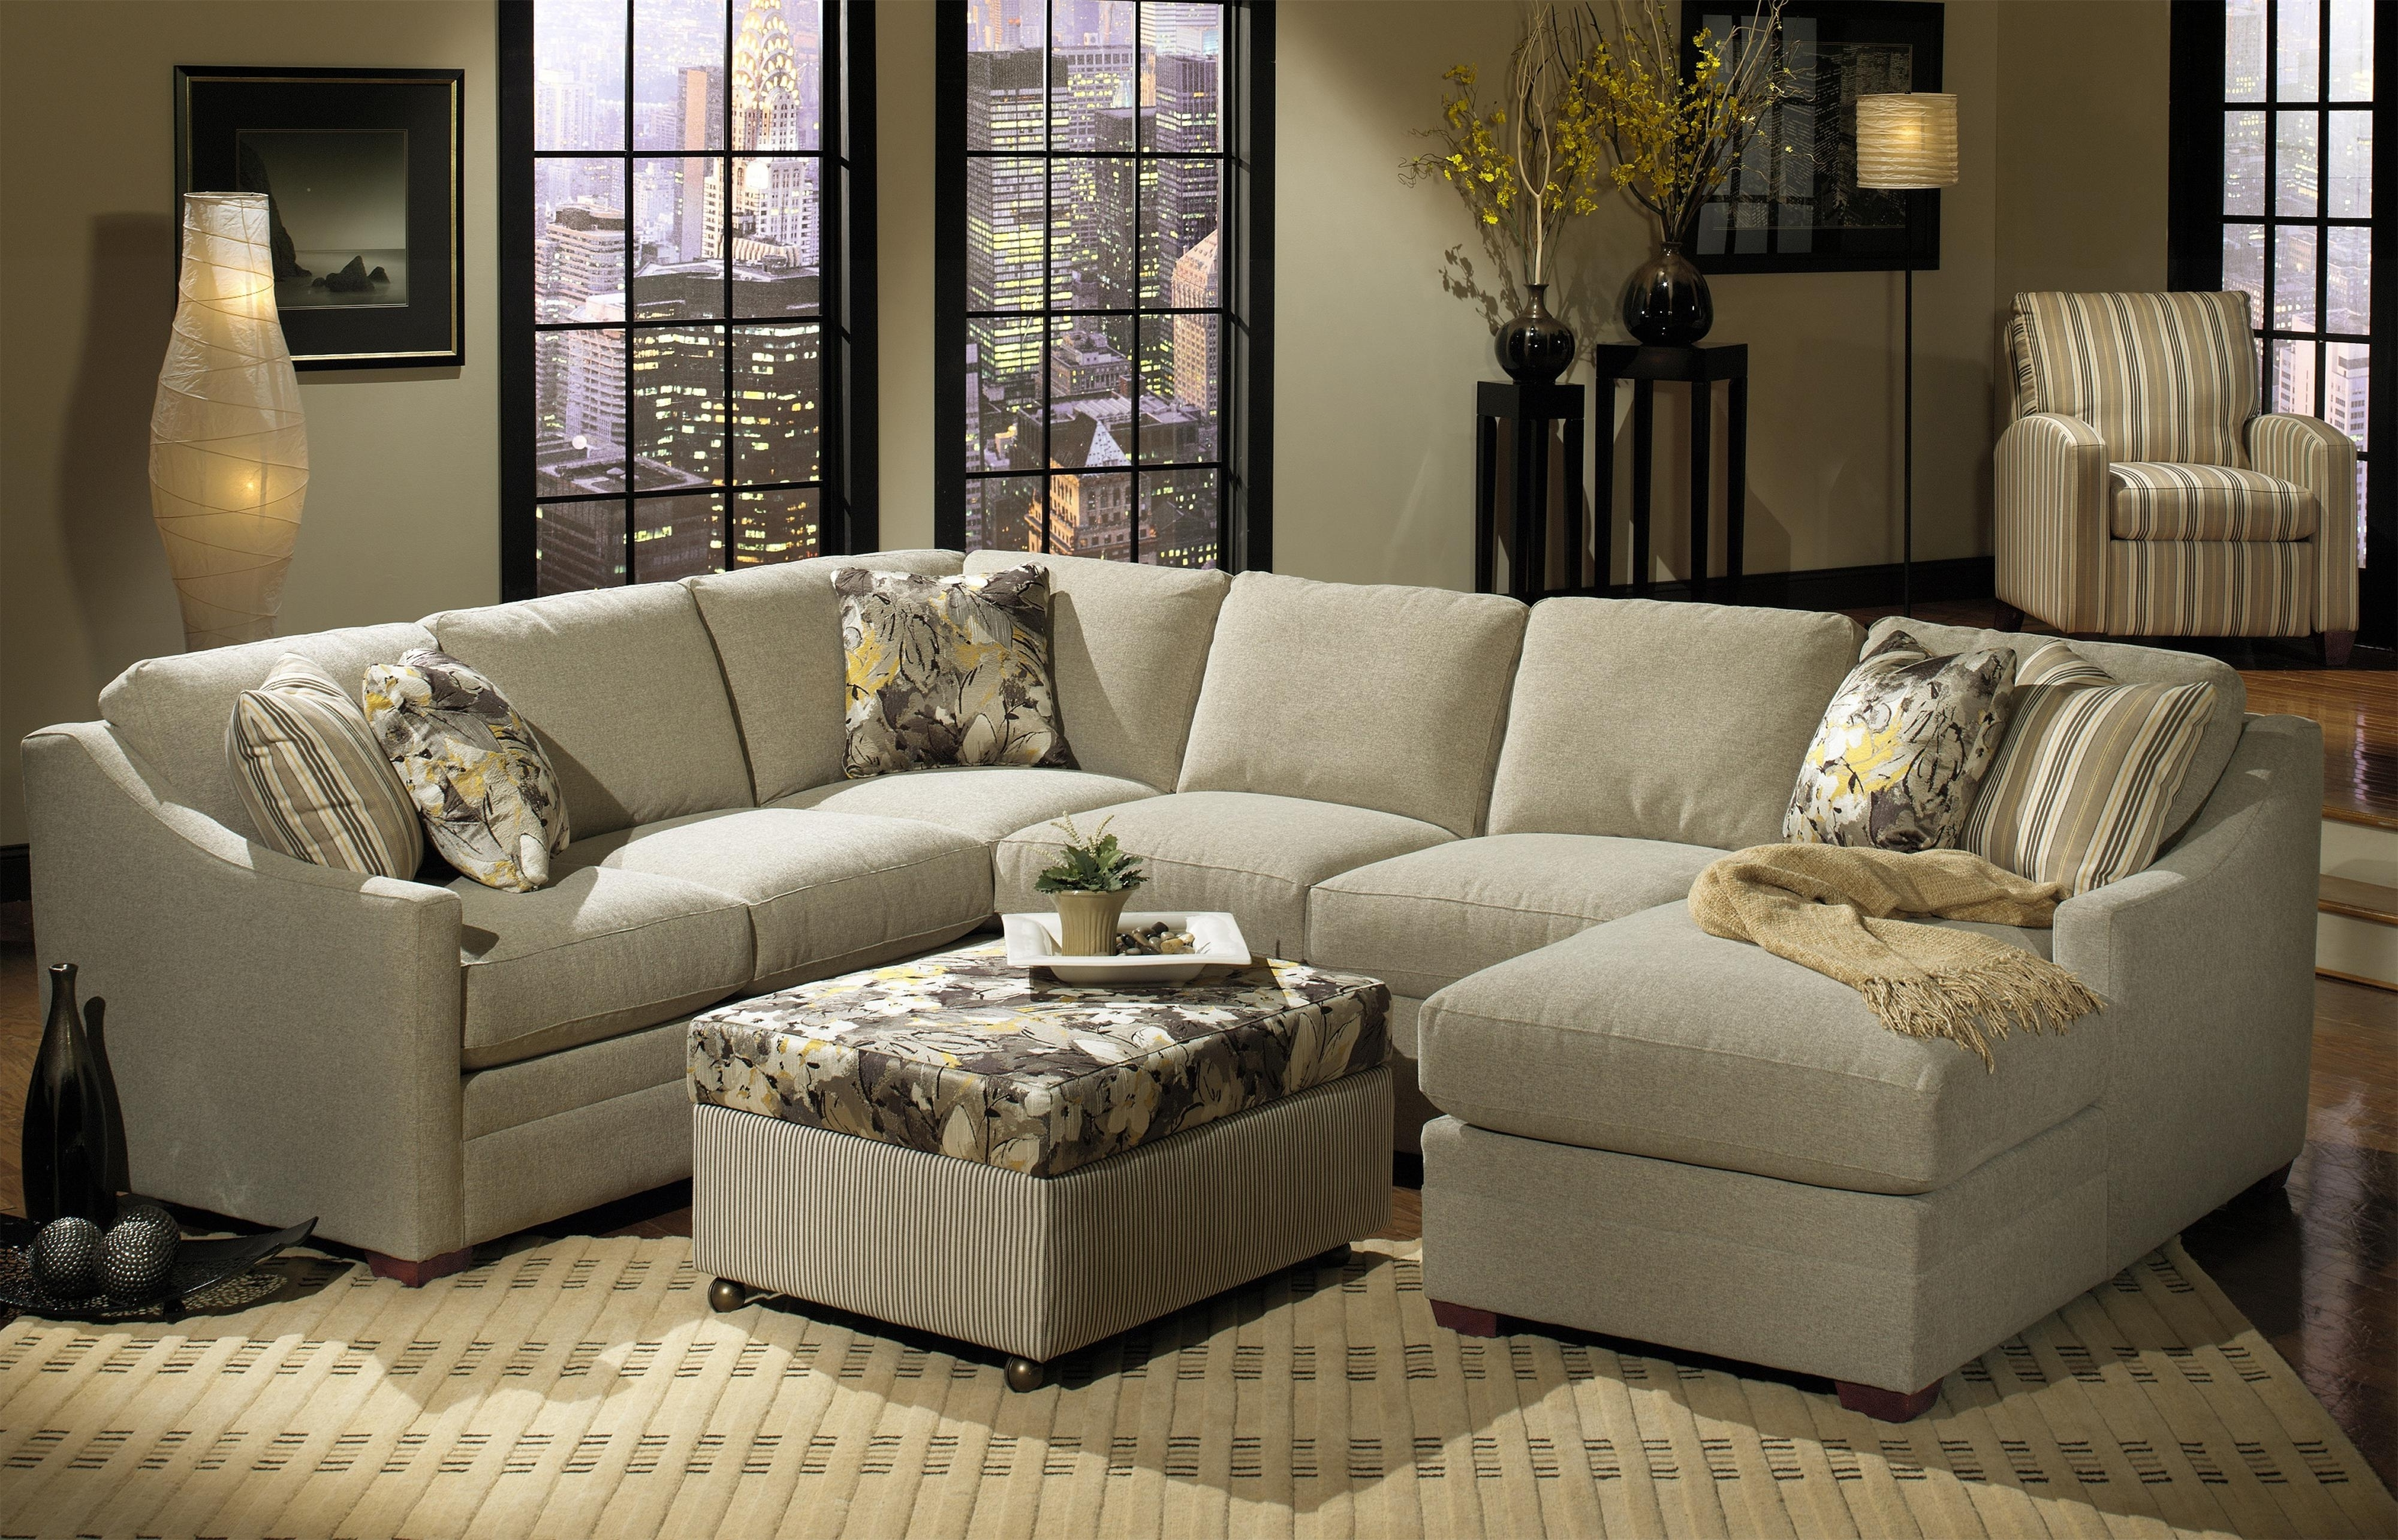 Favorite Gallery Craftsman Sectional Sofa – Mediasupload In Craftsman Sectional Sofas (View 4 of 15)